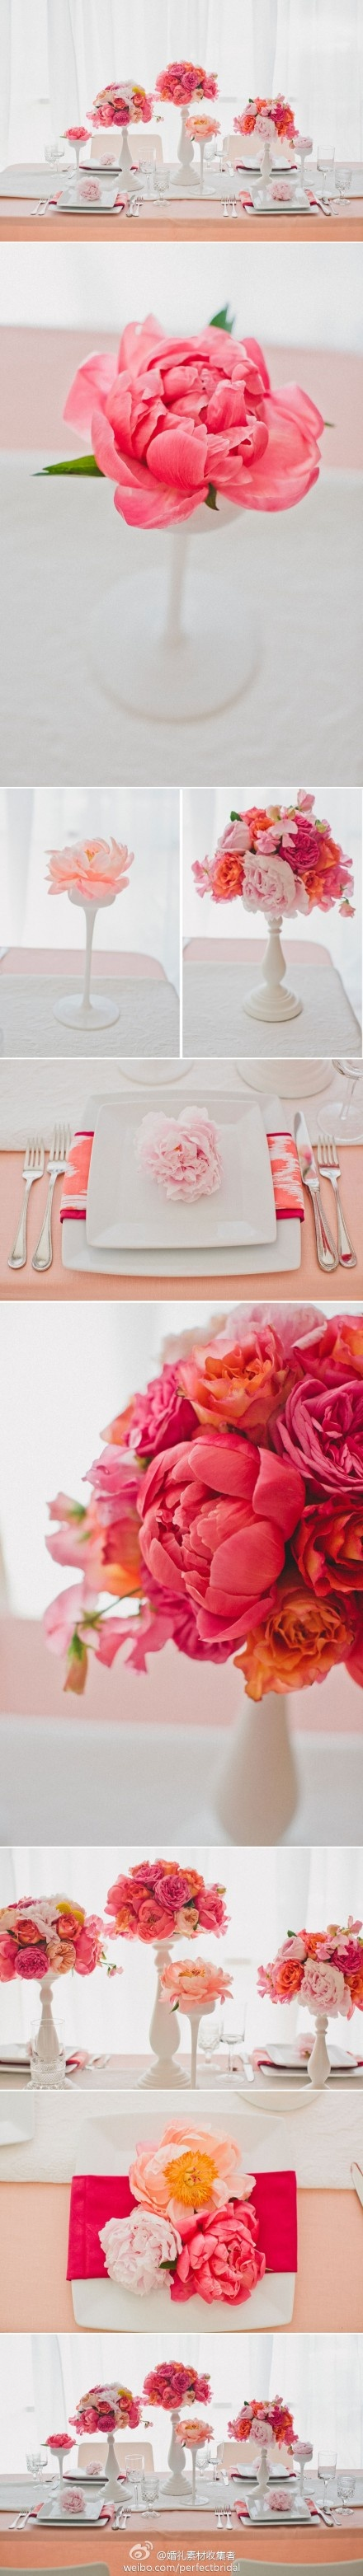 white vases and peonies